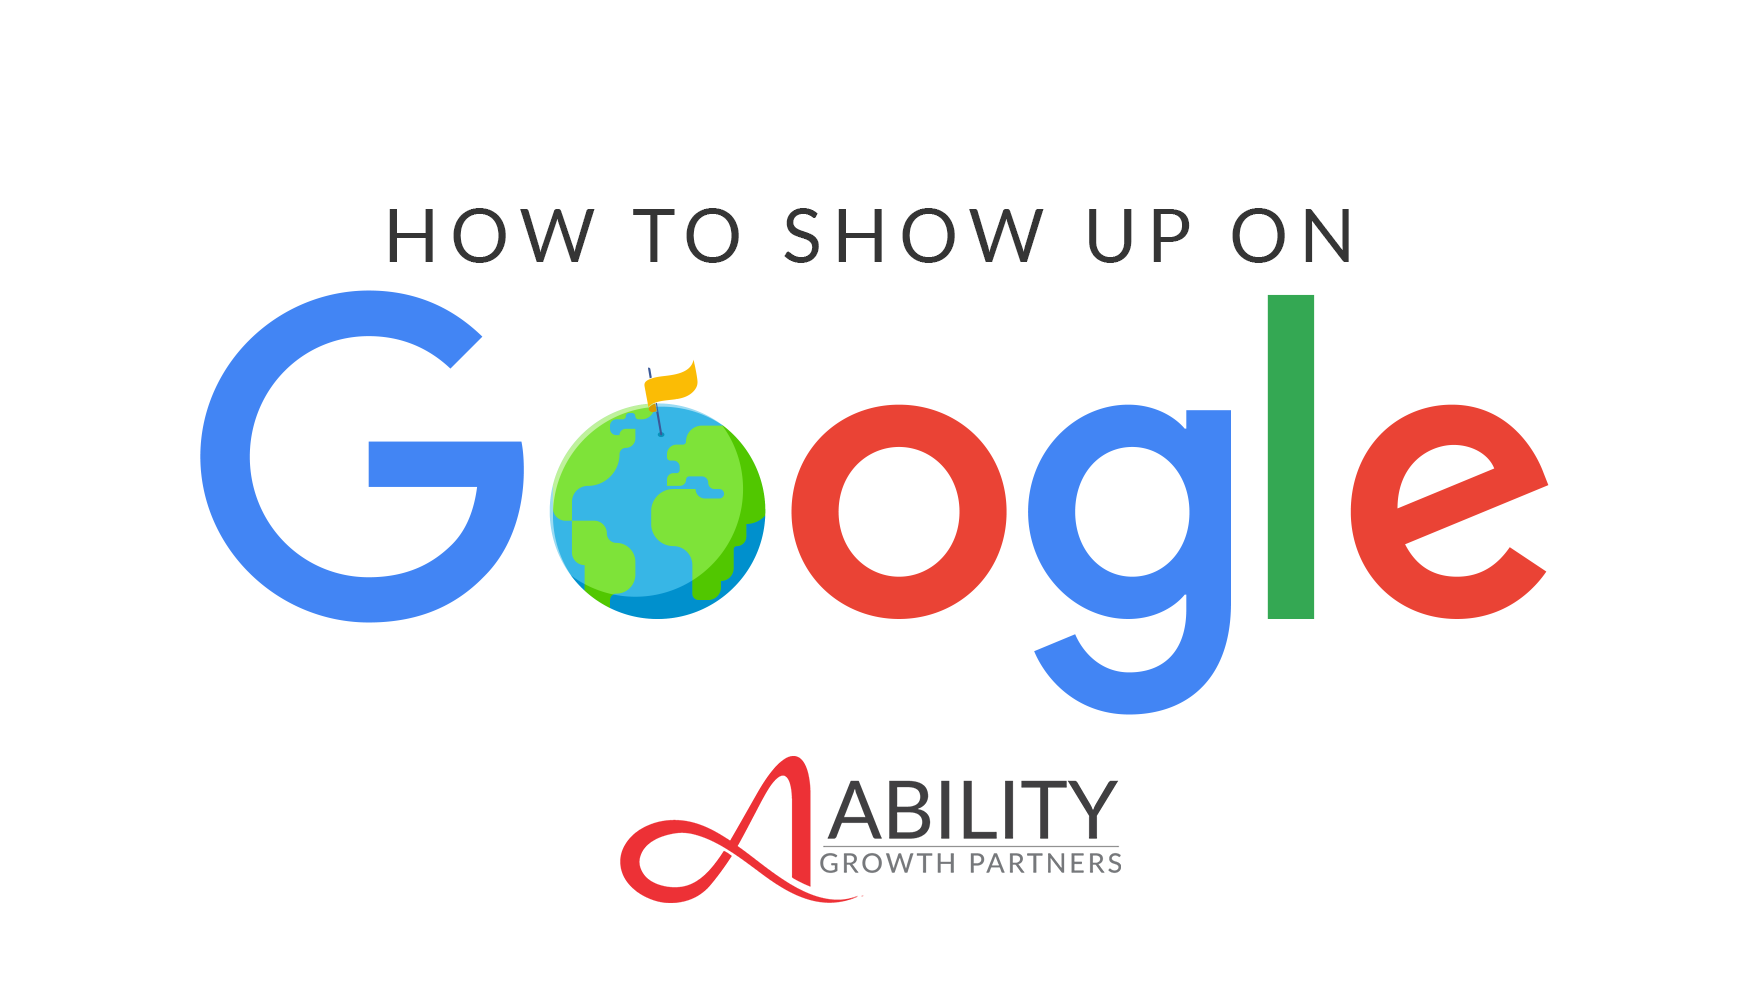 How To Show Up On Google blog post chapter 3, from Ability Growth Partners